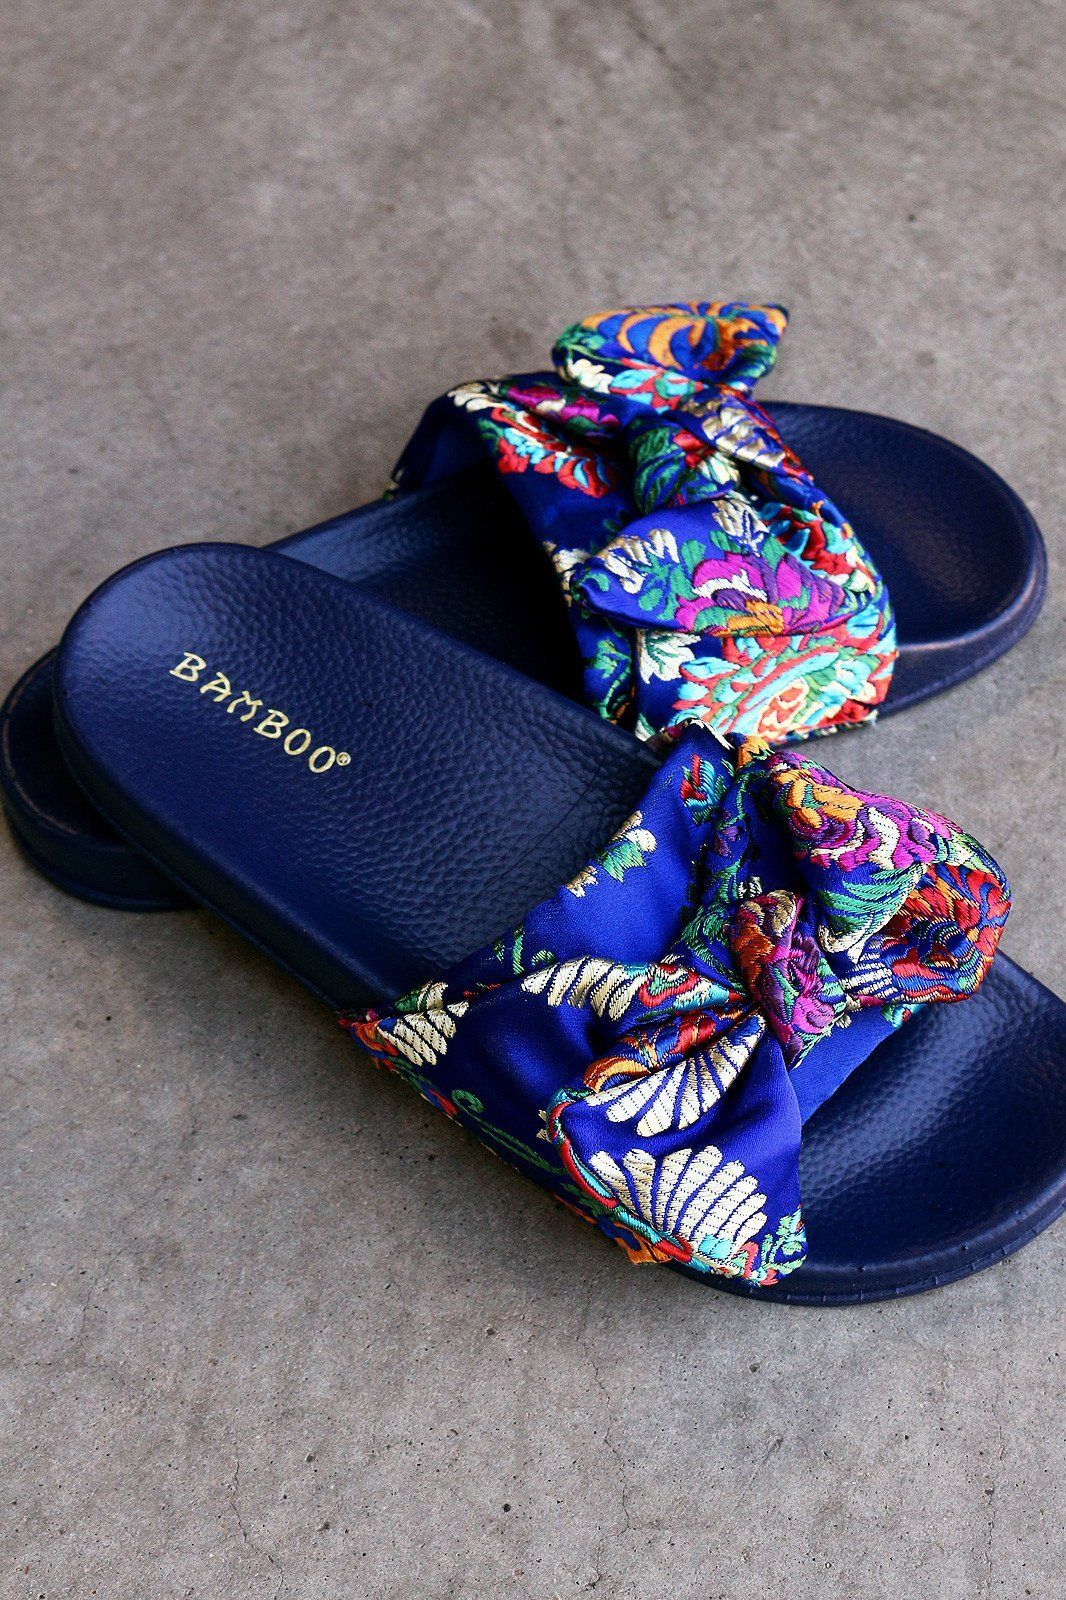 0f4128dbe5 Satin Embroidered Brocade Bow Slide Sandal in 2019 | Fashion sandals ...